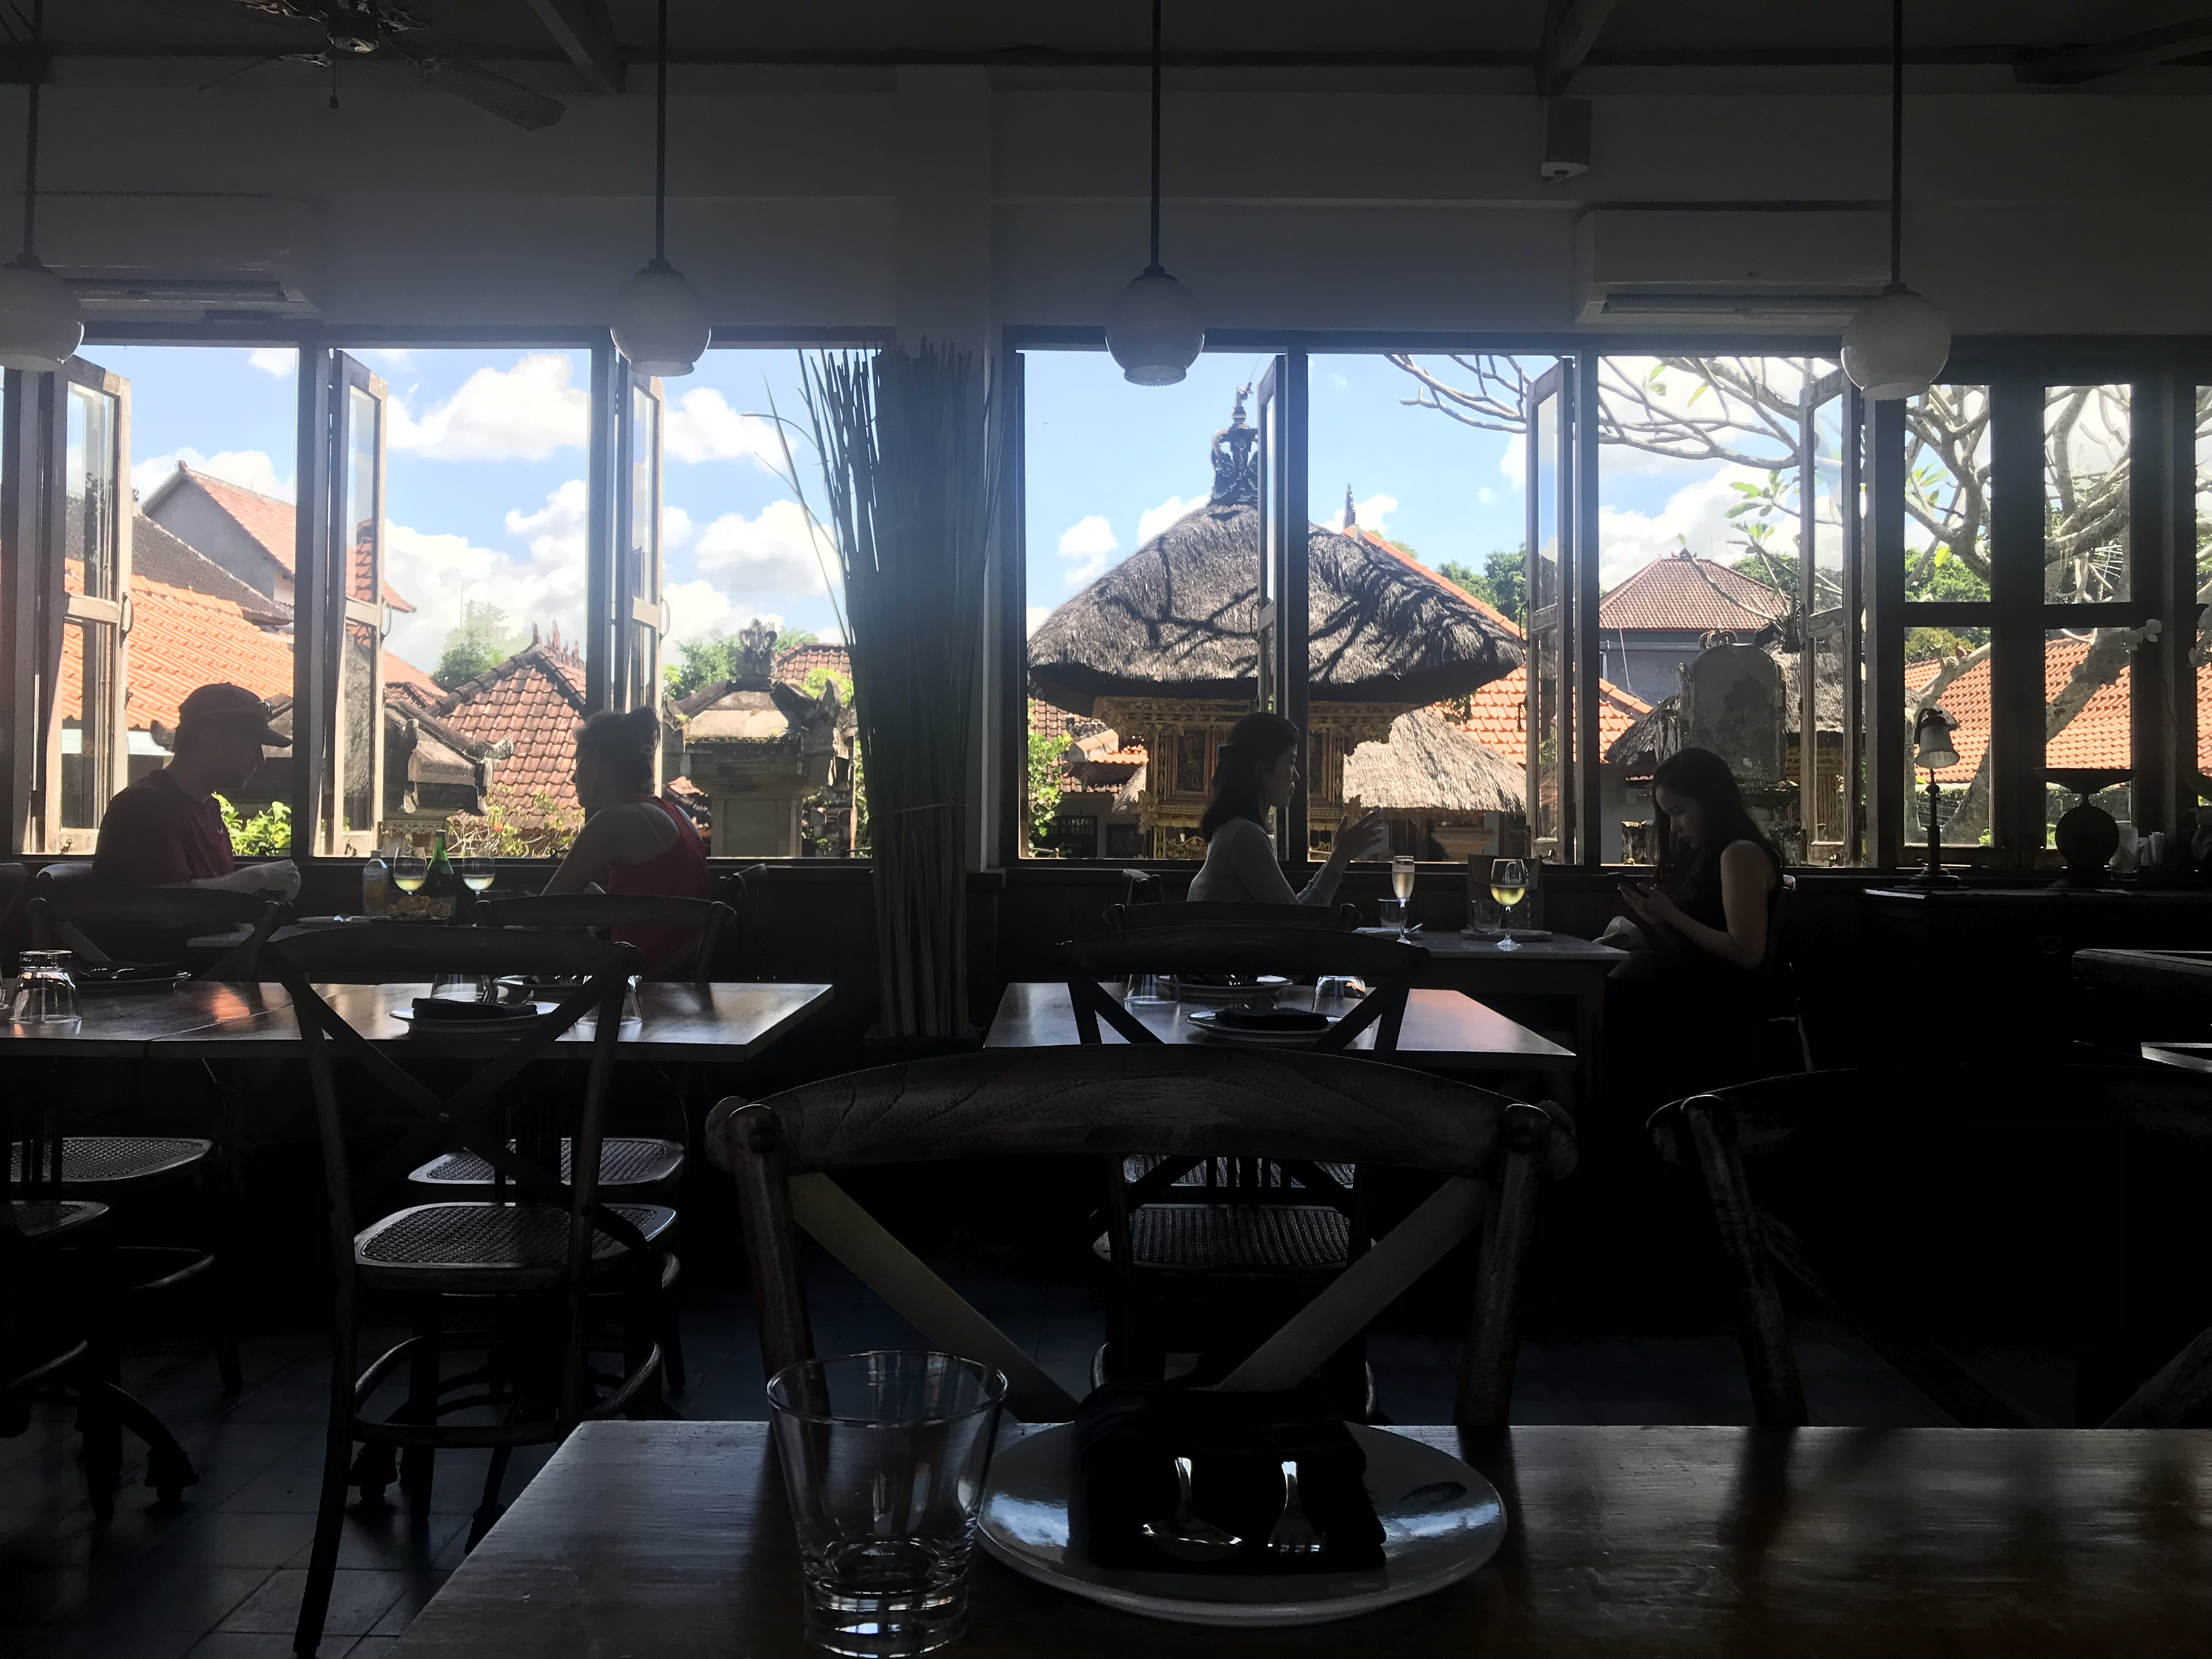 The Best Restaurant In Bali: Hujan Locale